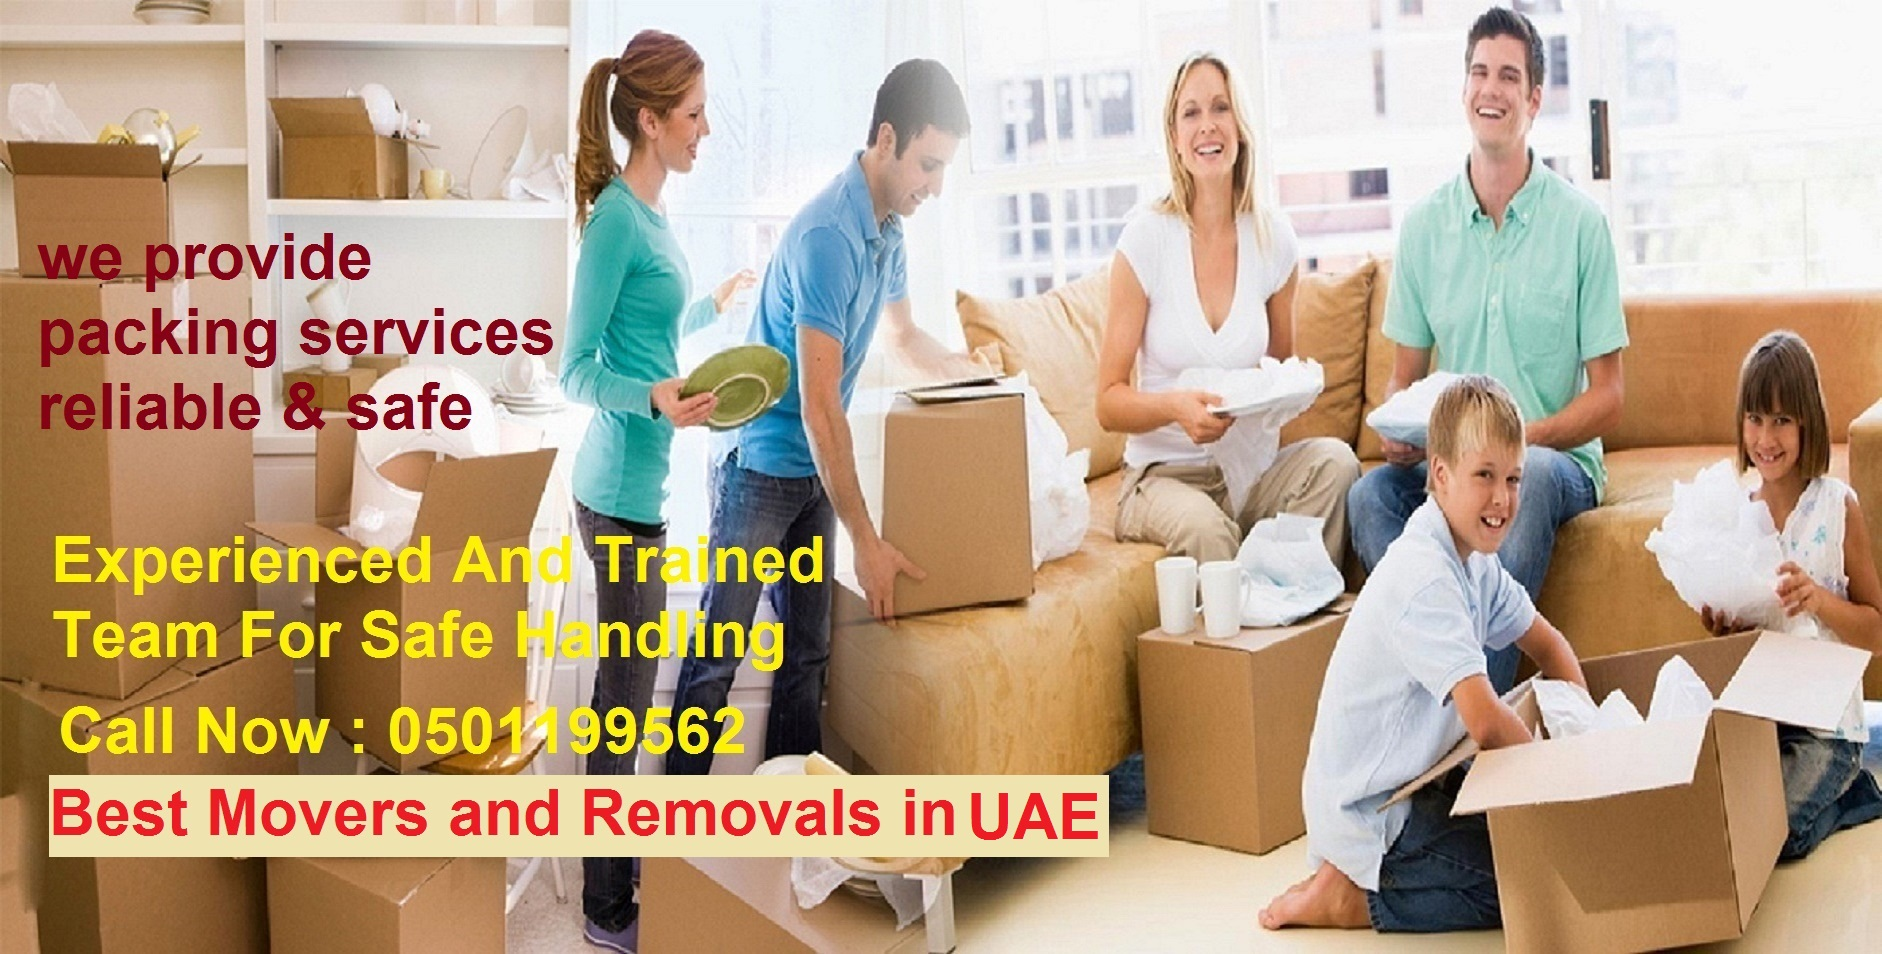 our company cars movers in uae image